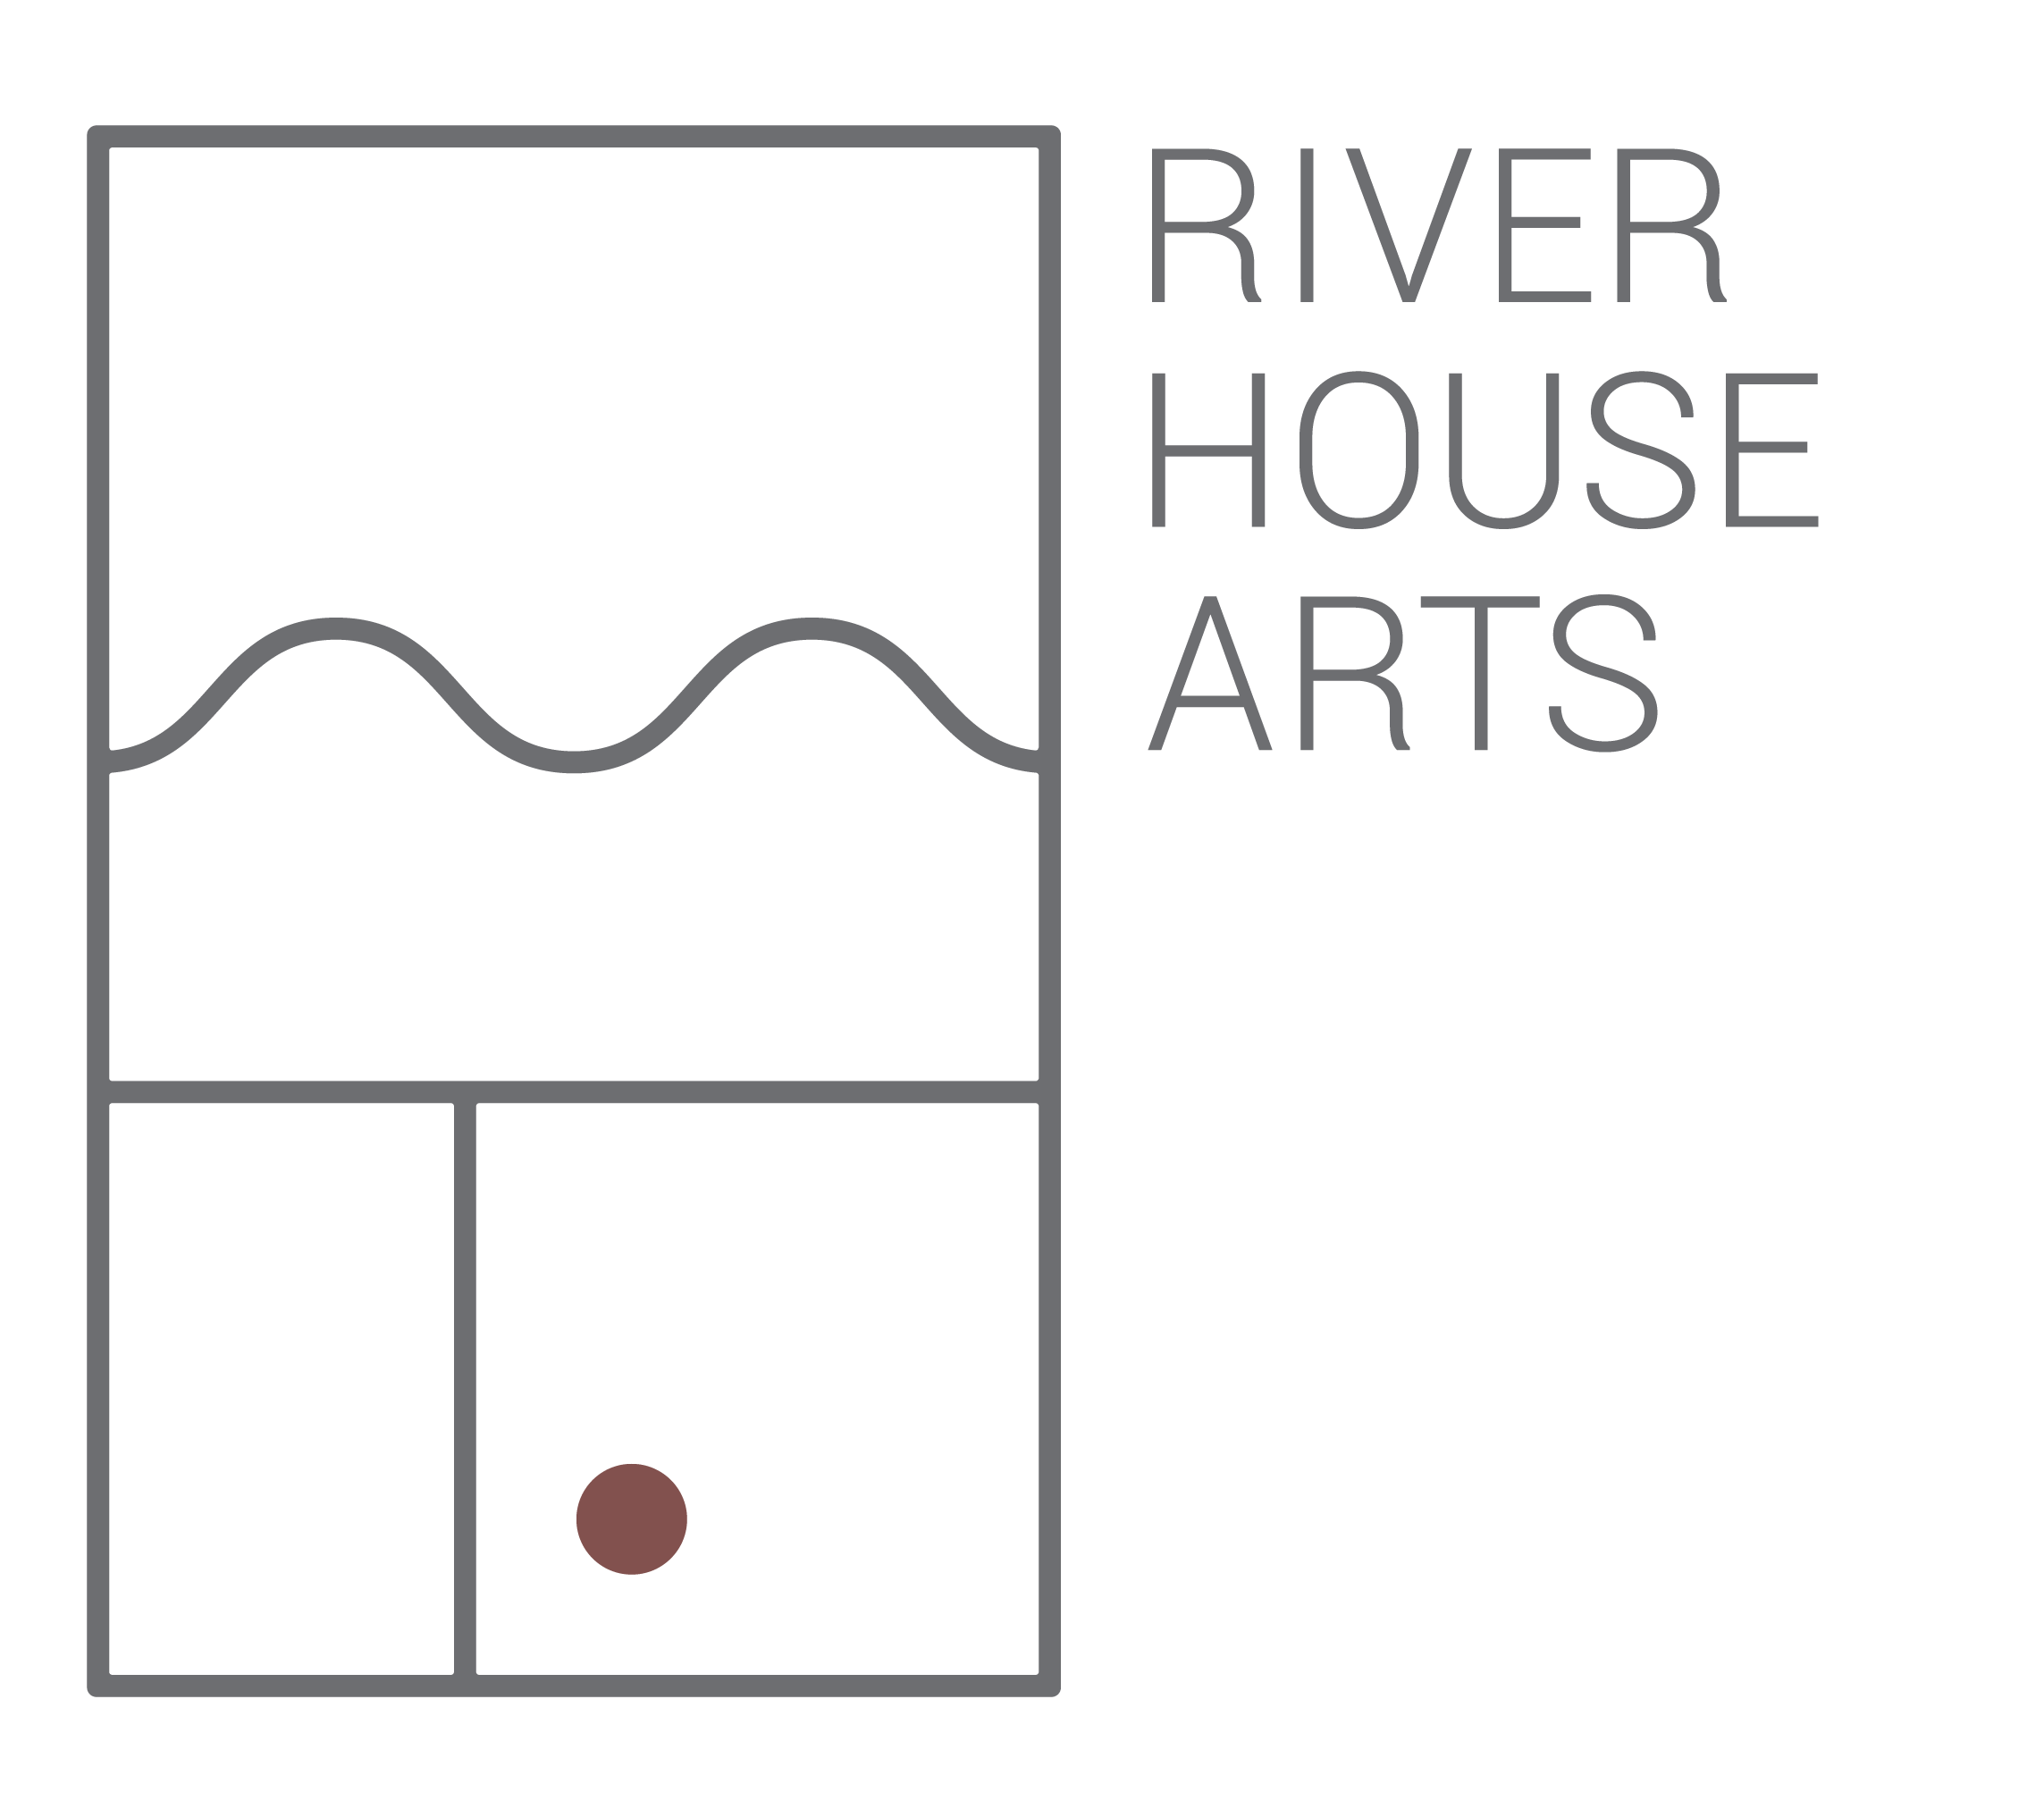 River House Arts